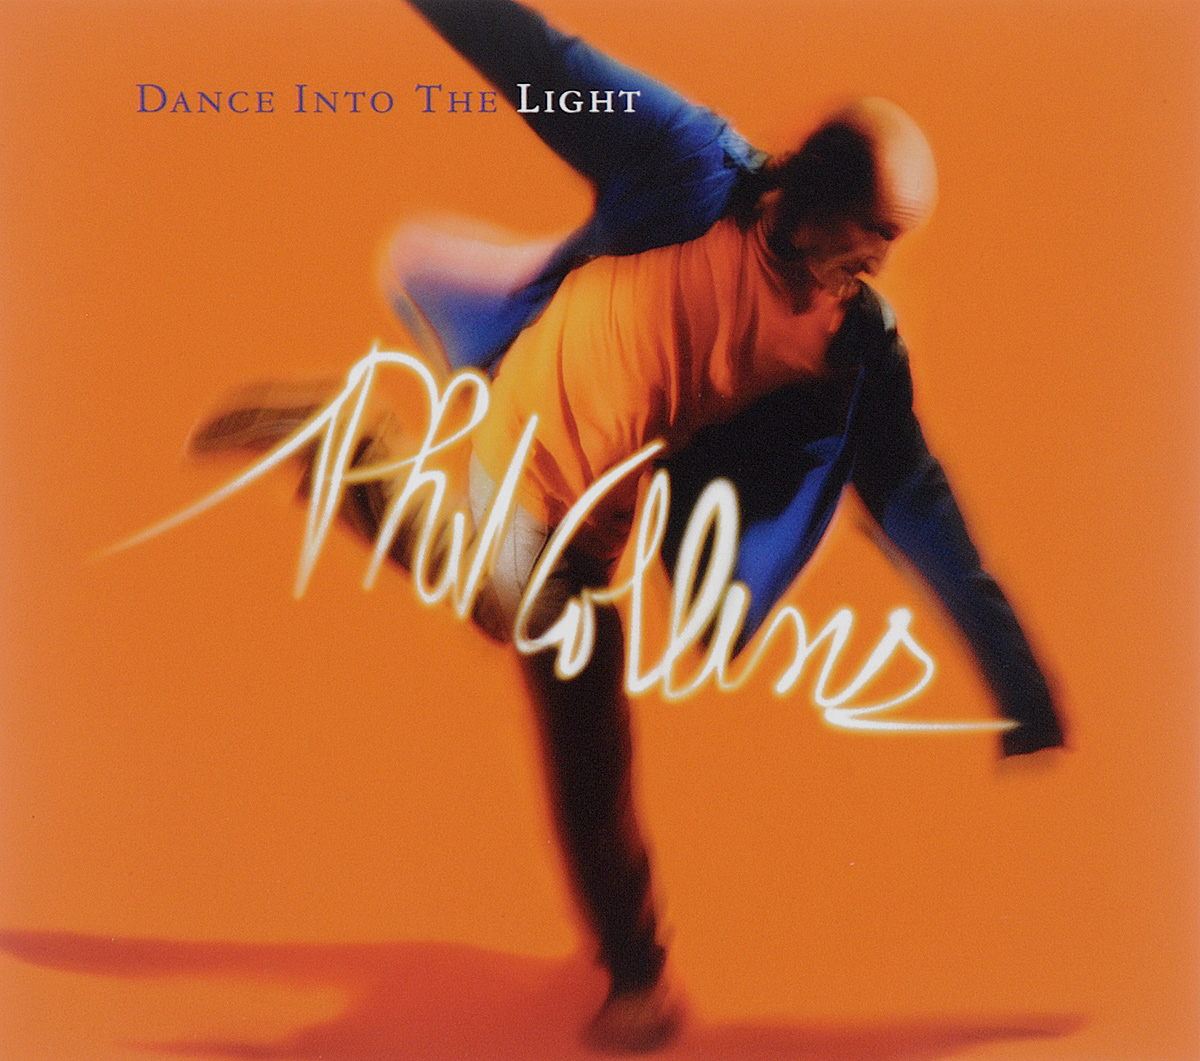 Philip Collins Philip Collins. Dance Into The Light philip laurence pl24411 61p